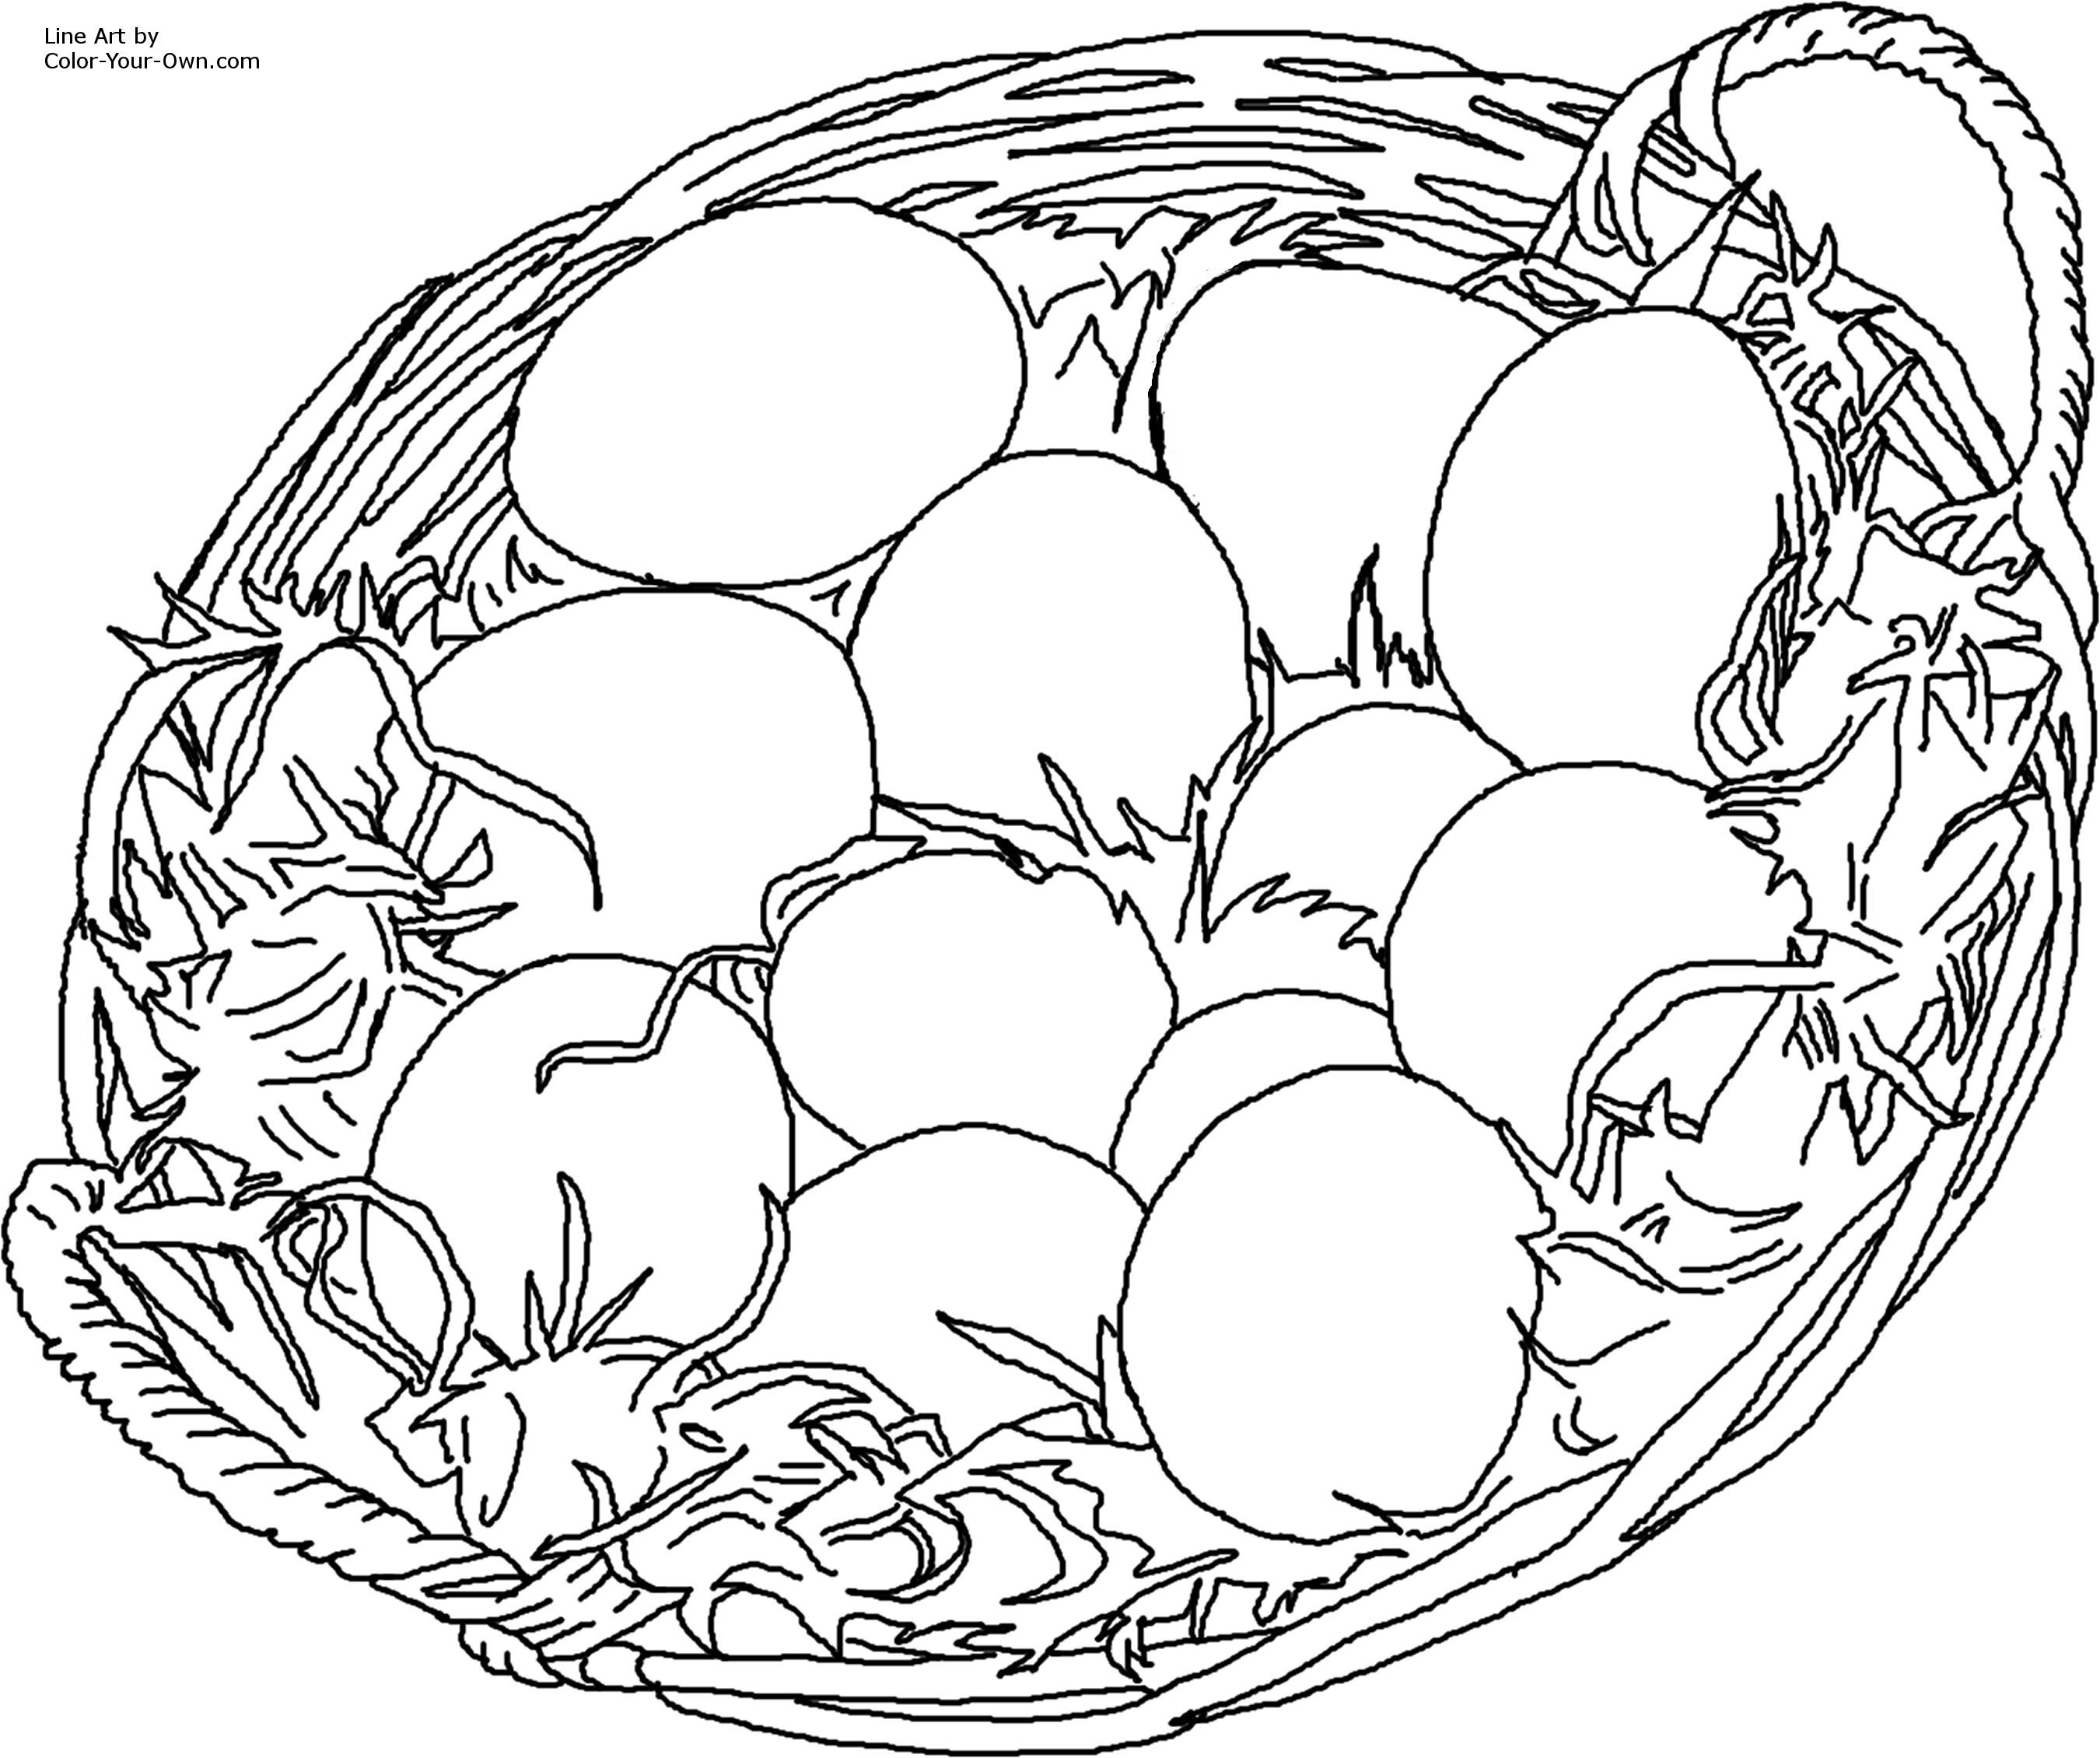 Free coloring pages chickens - Easter Eggs In Basket Coloring Page